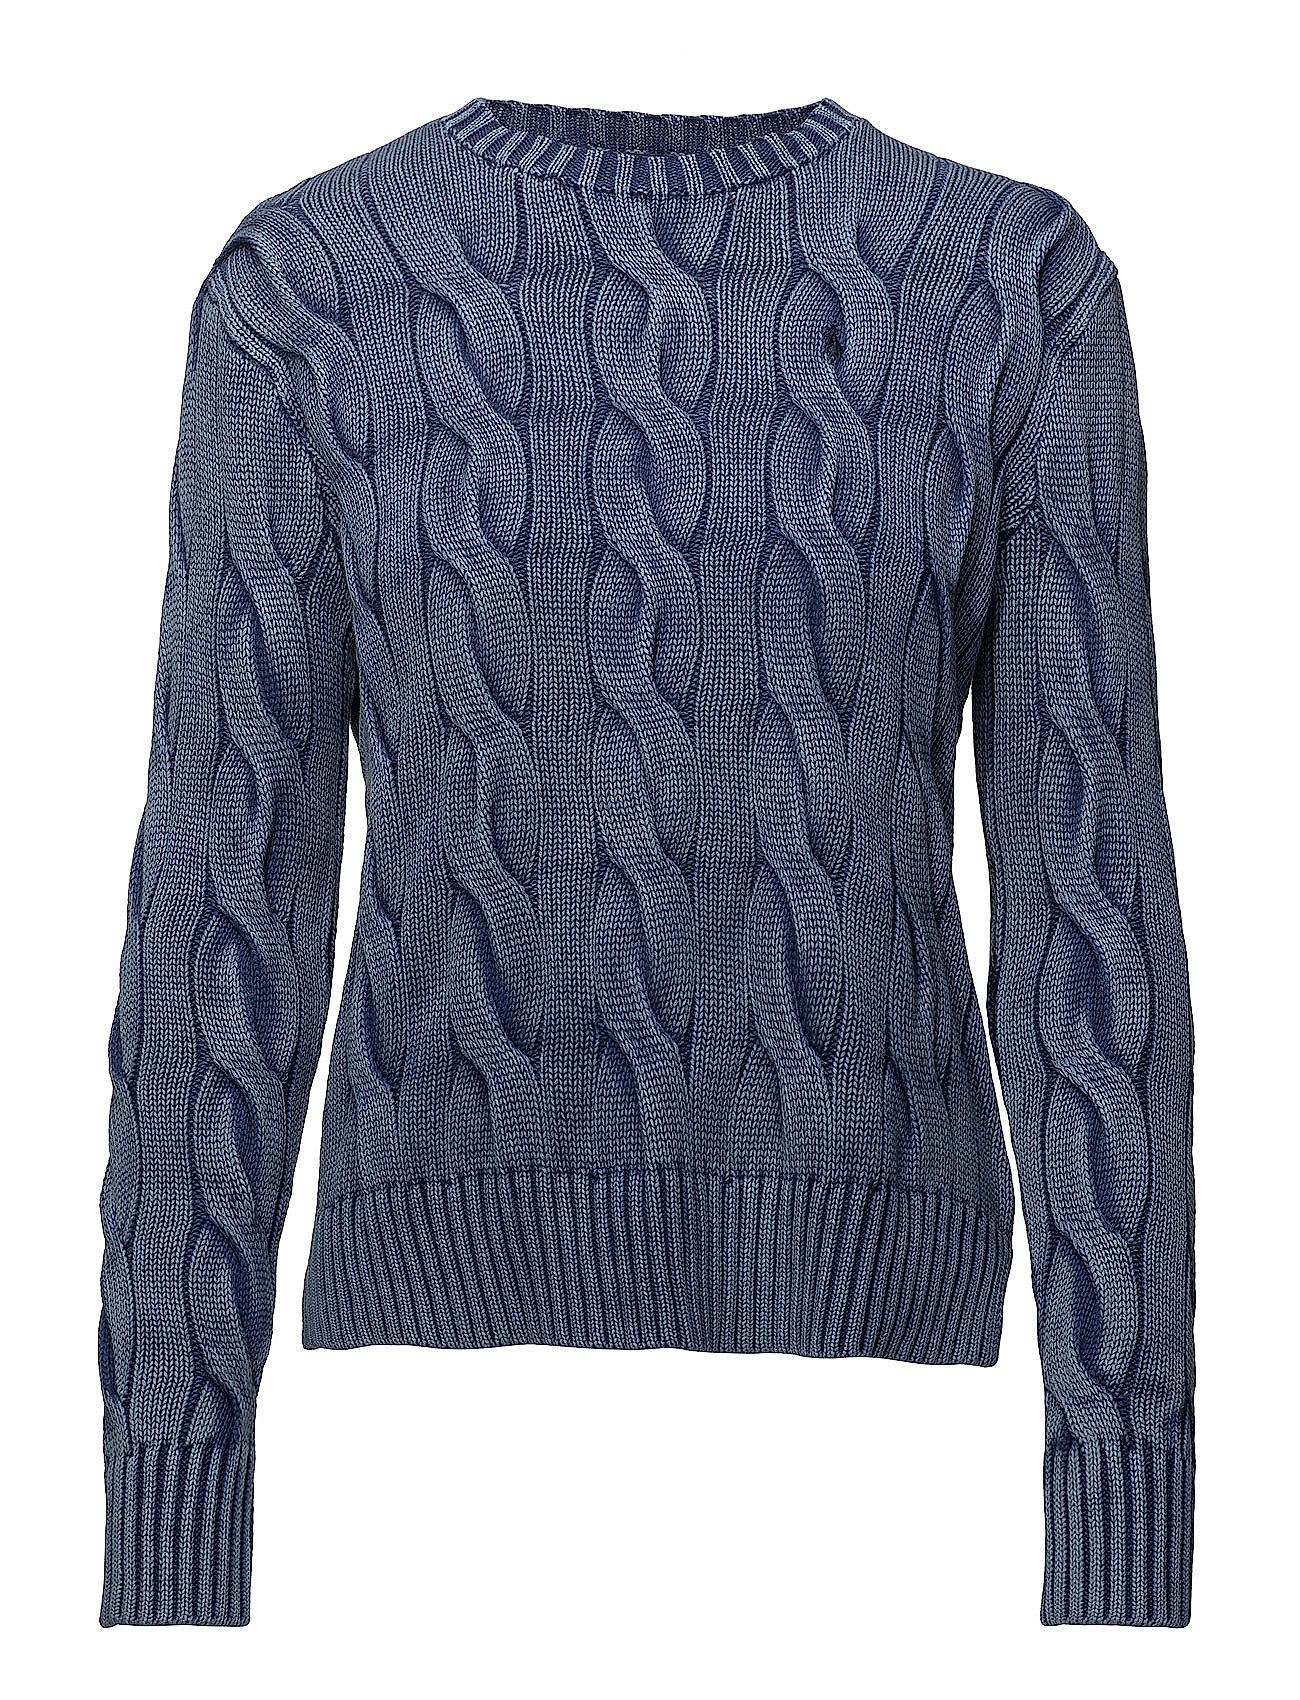 87562a2a9071 Cable-knit Cotton Sweater (Indigo) (£77.35) - Polo Ralph Lauren ...